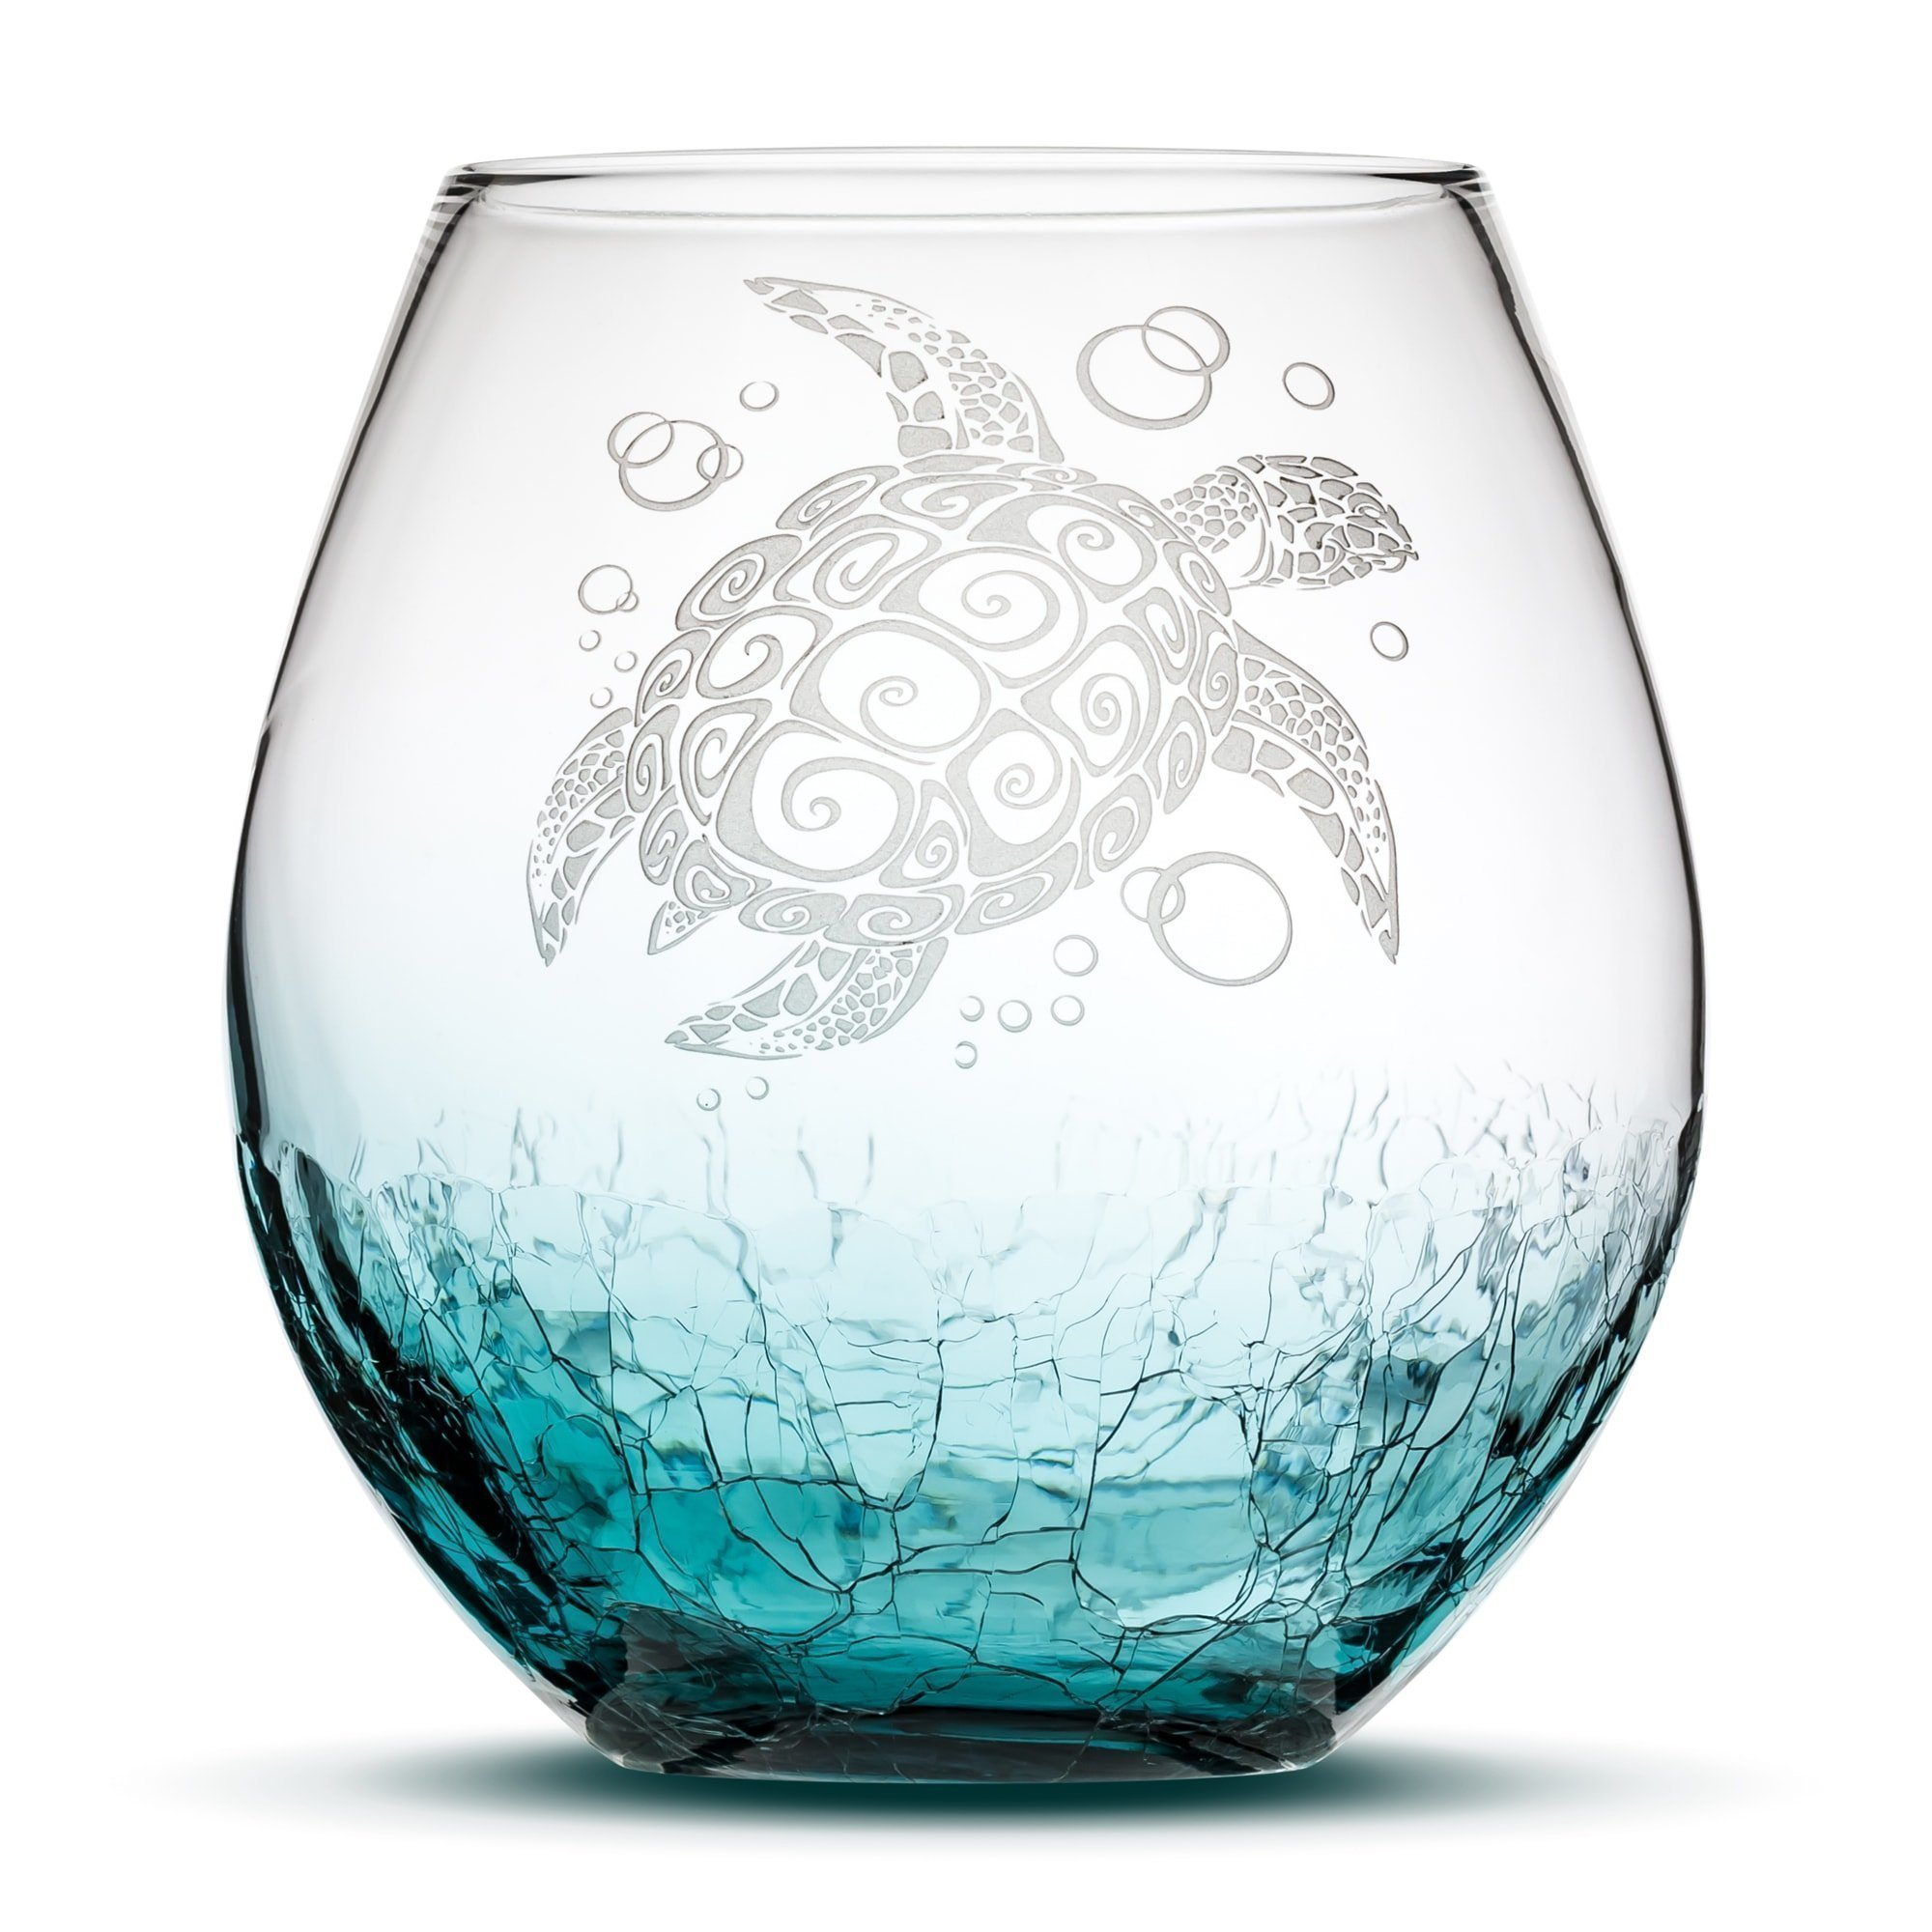 Integrity Bottles Sea Turtle Stemless Wine Glass, Crackle Teal, Handblown, Tribal Design, Hand Etched Gifts, Sand Carved by Integrity Bottles